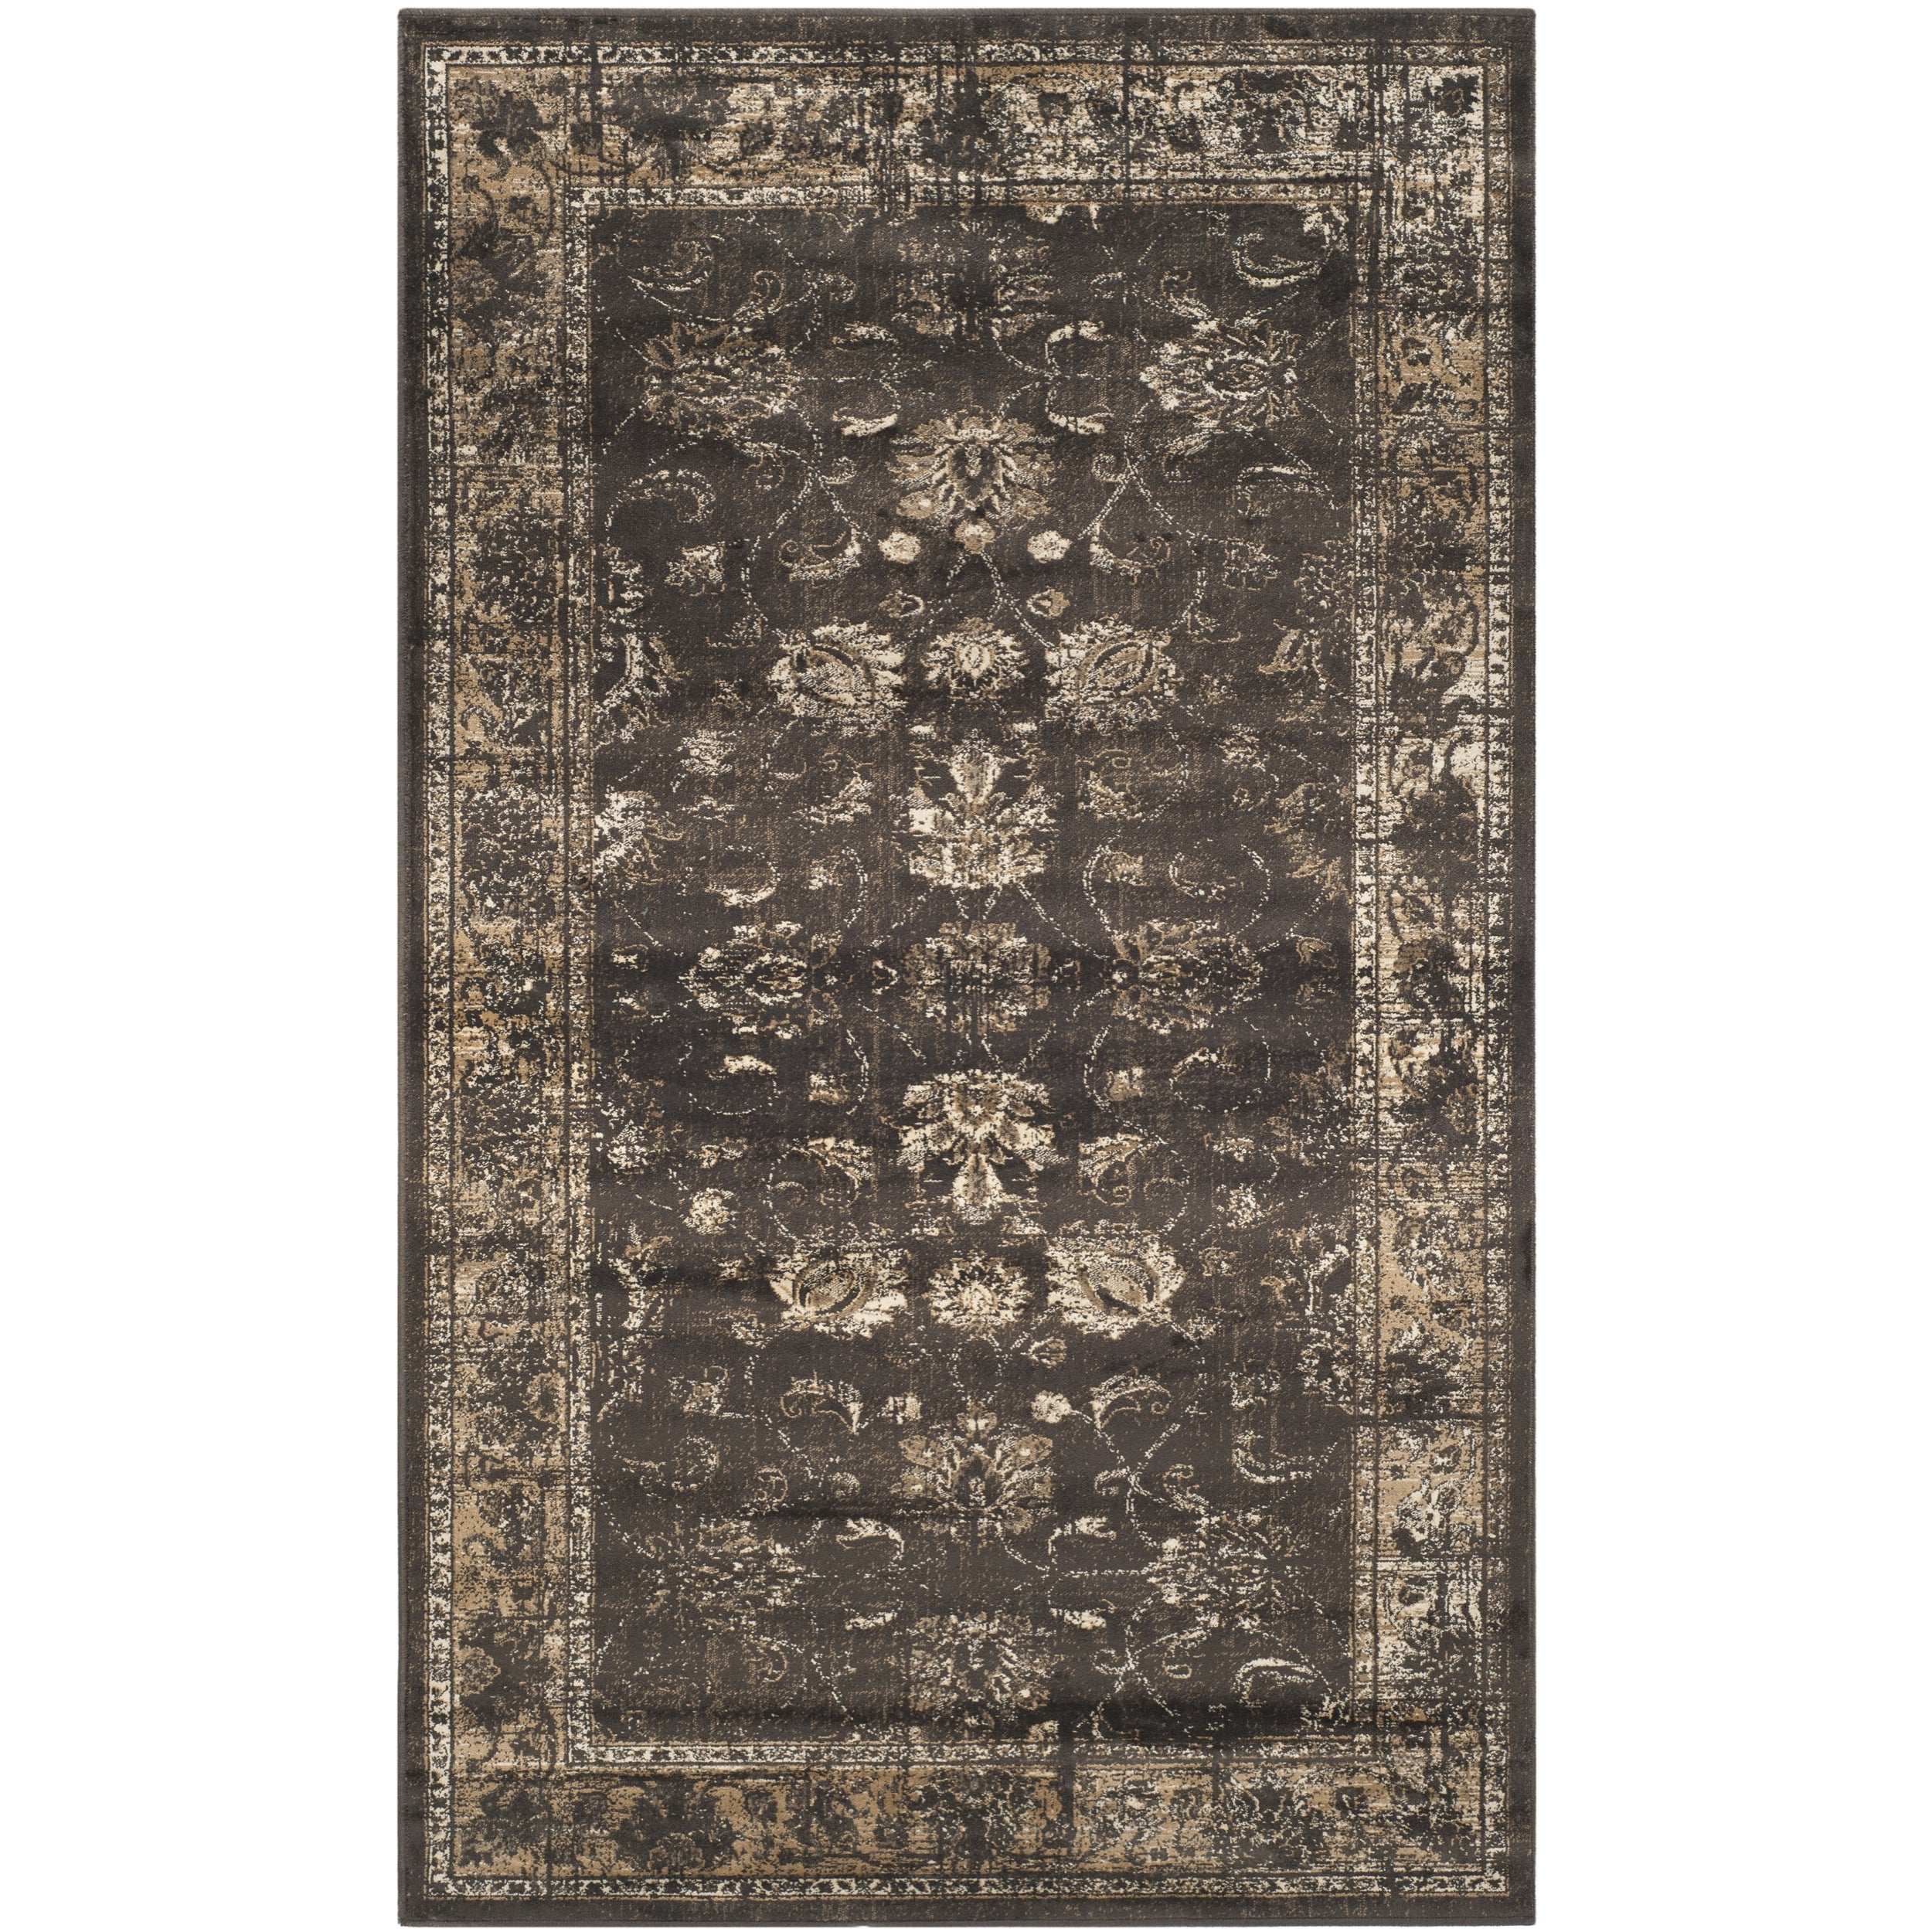 Safavieh Vintage Soft Anthracite Viscose Area Rug (2'7 x 4')